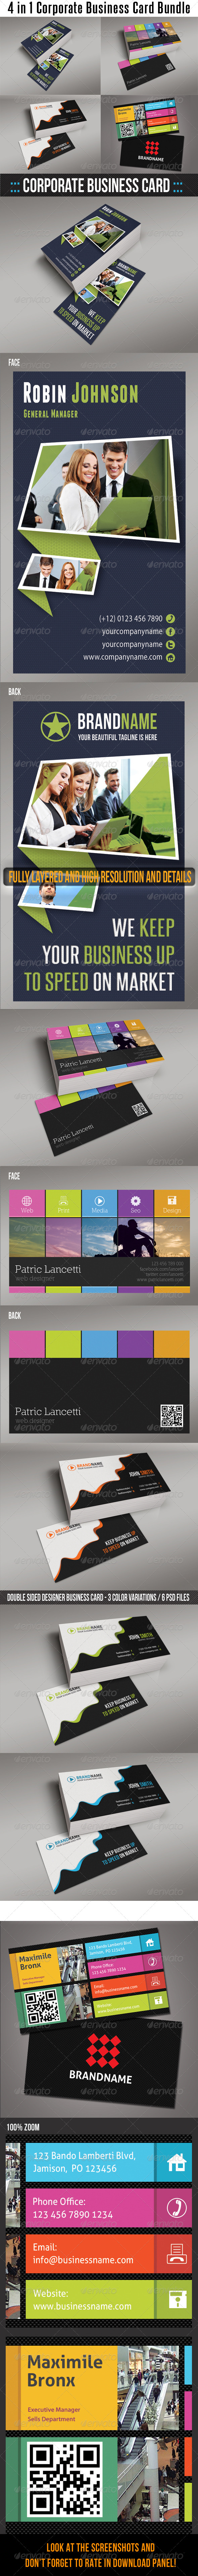 GraphicRiver 4 in 1 Corporate Business Card Bundle 03 6724765